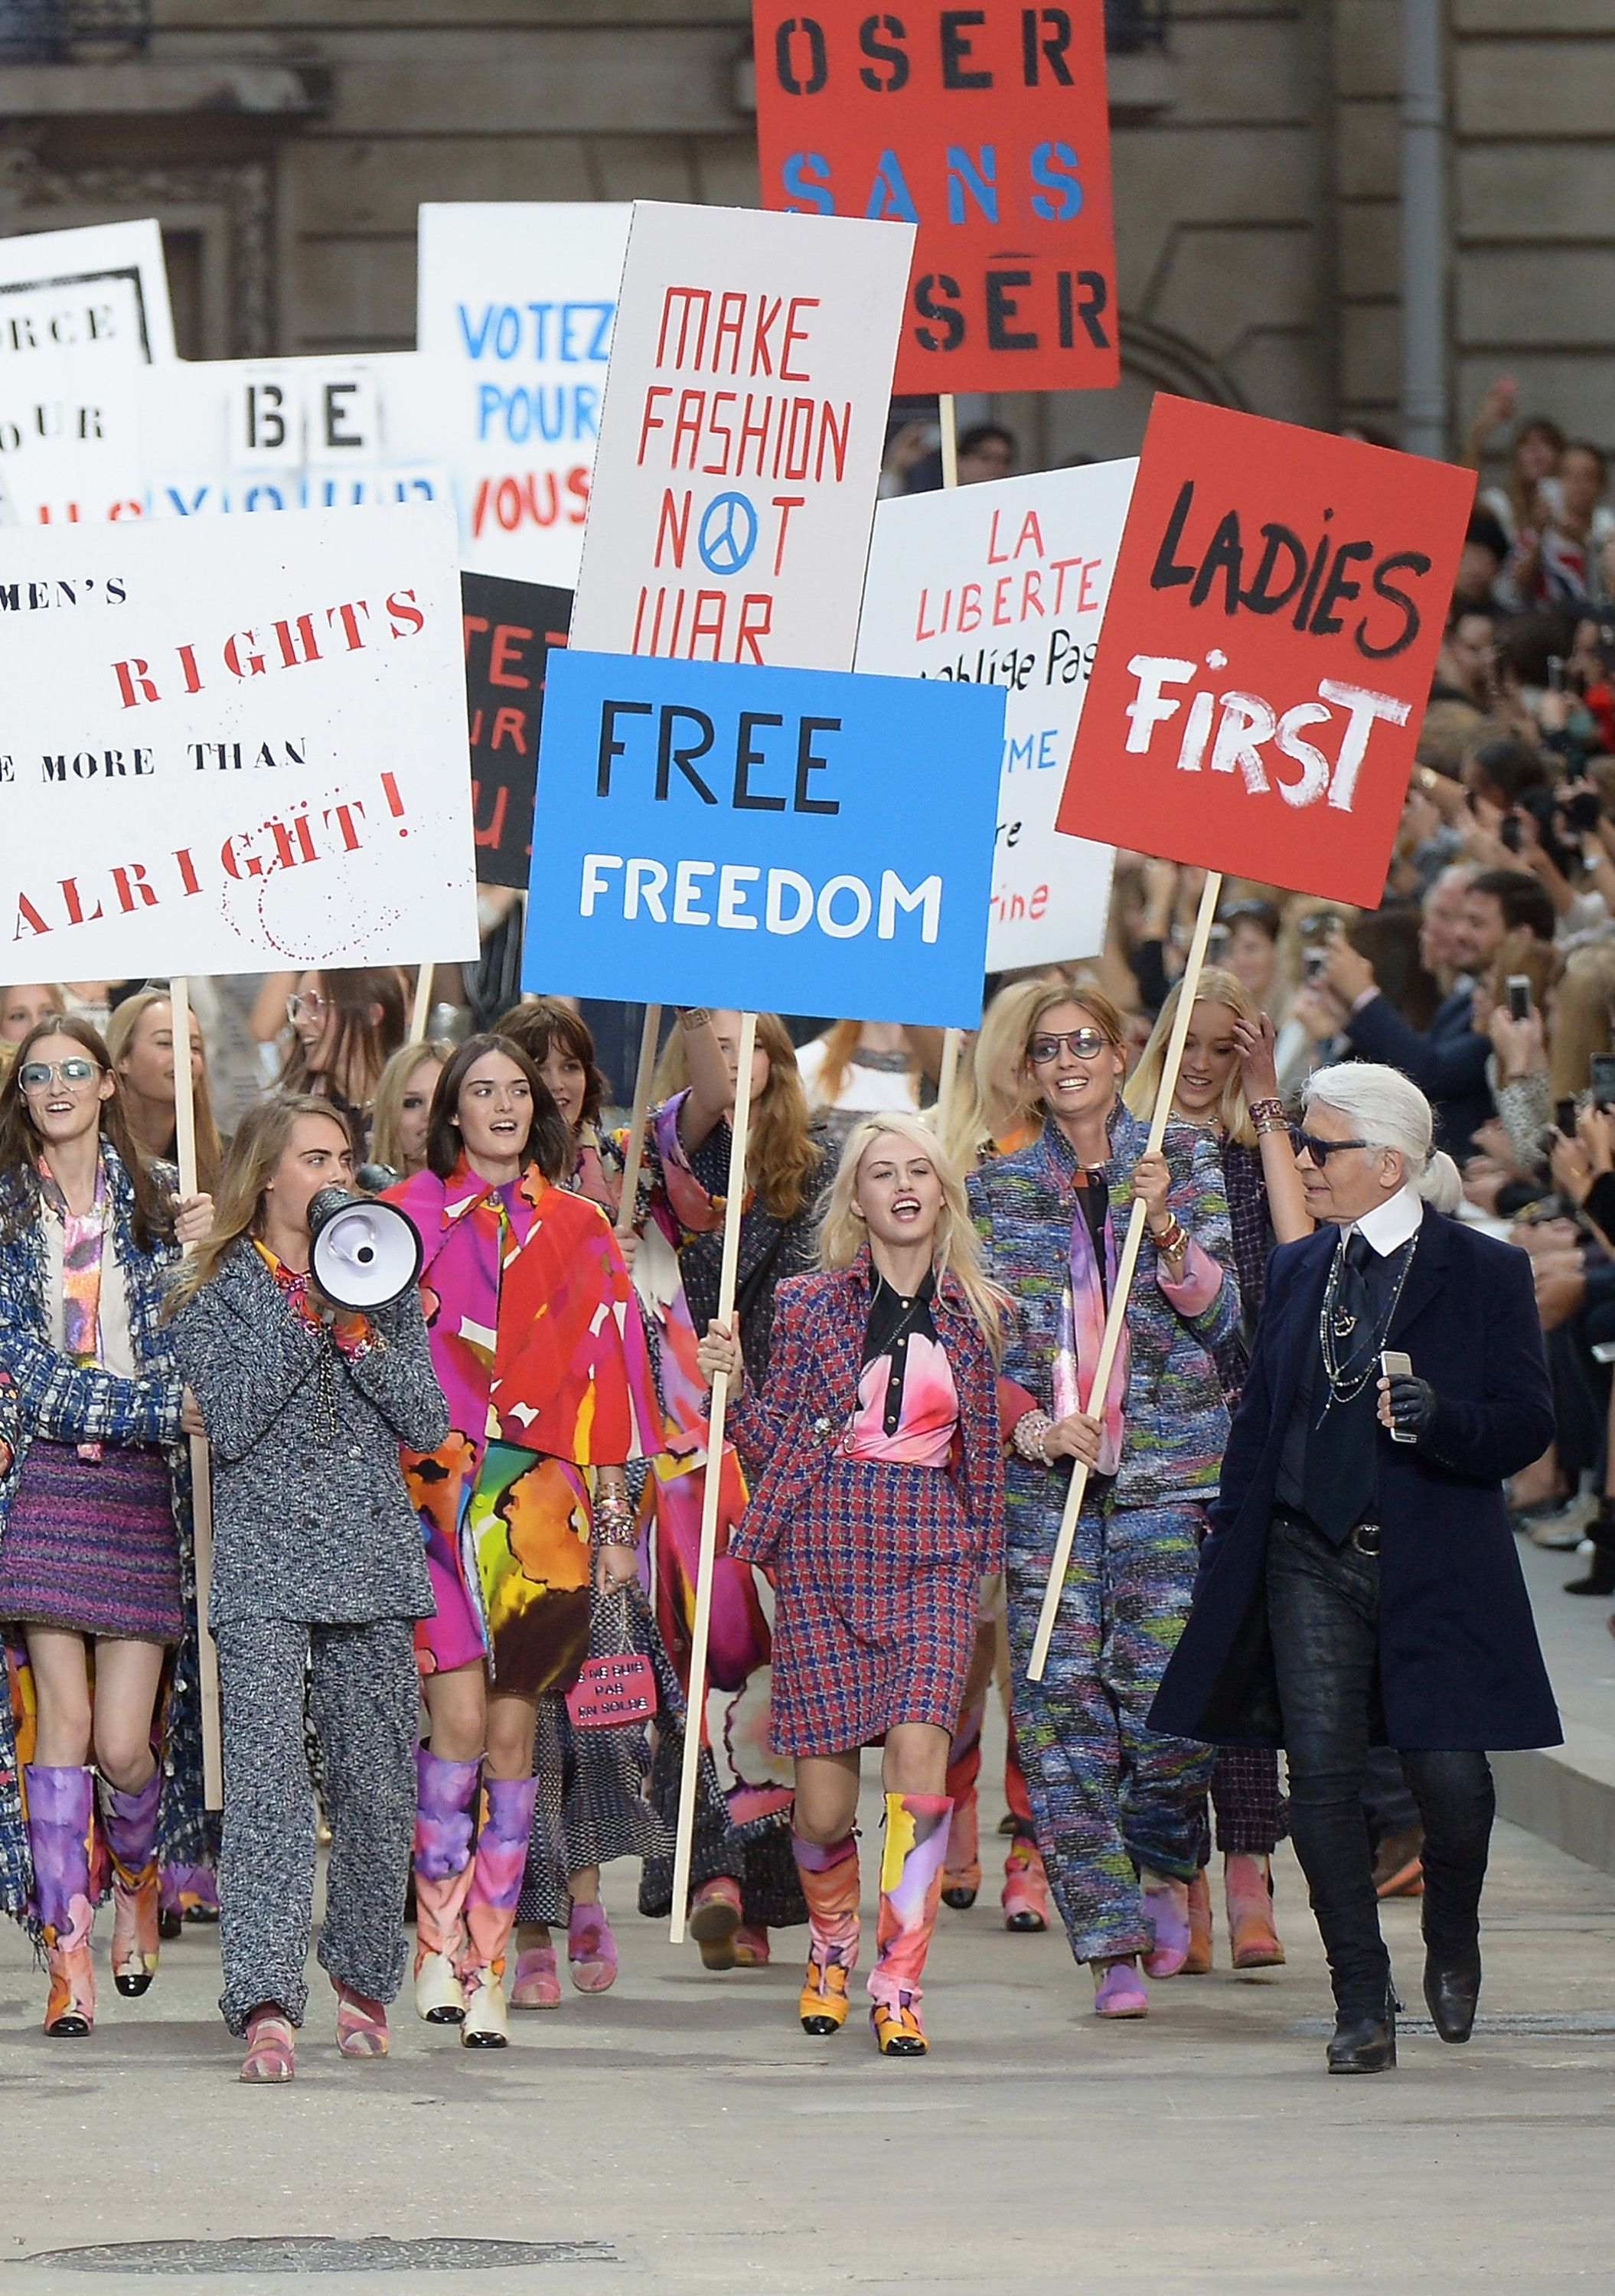 Models Take Chanel S Paris Protests Beyond The Runway Feminist Fashion Feminist Protest Paris Protests